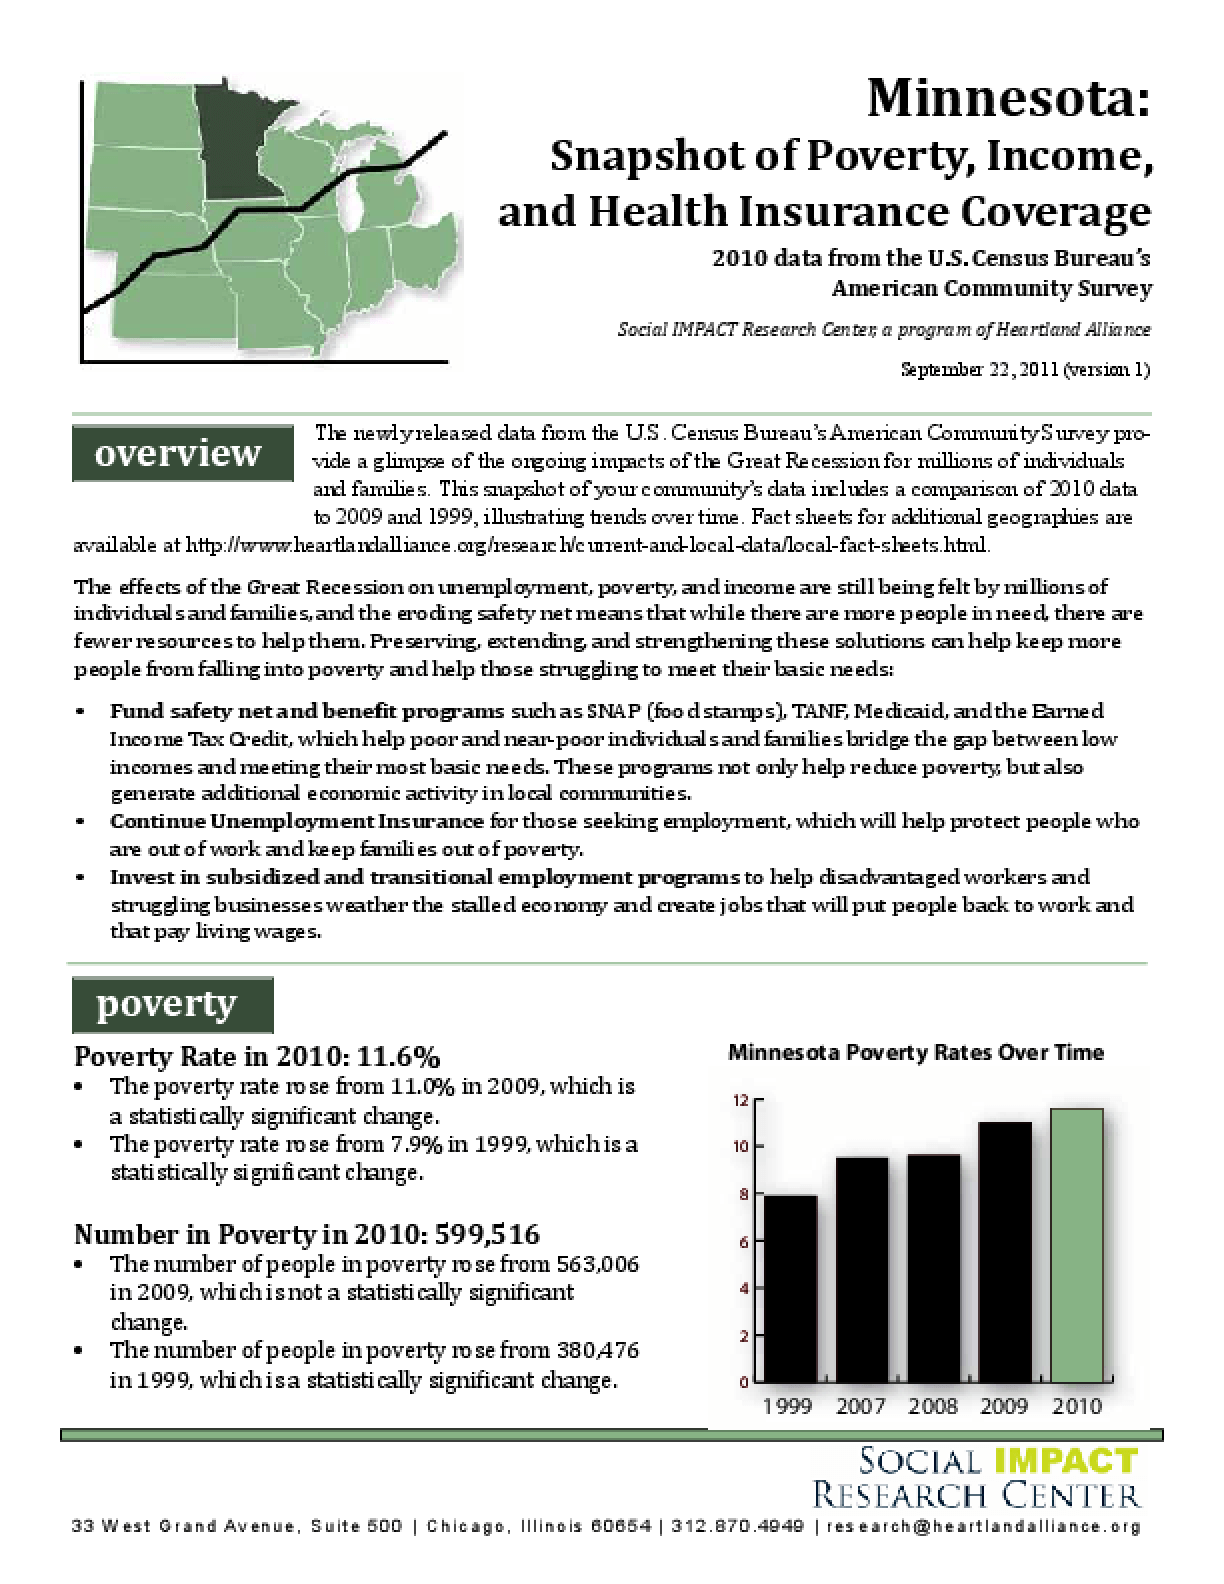 Minnesota: Snapshot of Poverty, Income, and Health Insurance Coverage